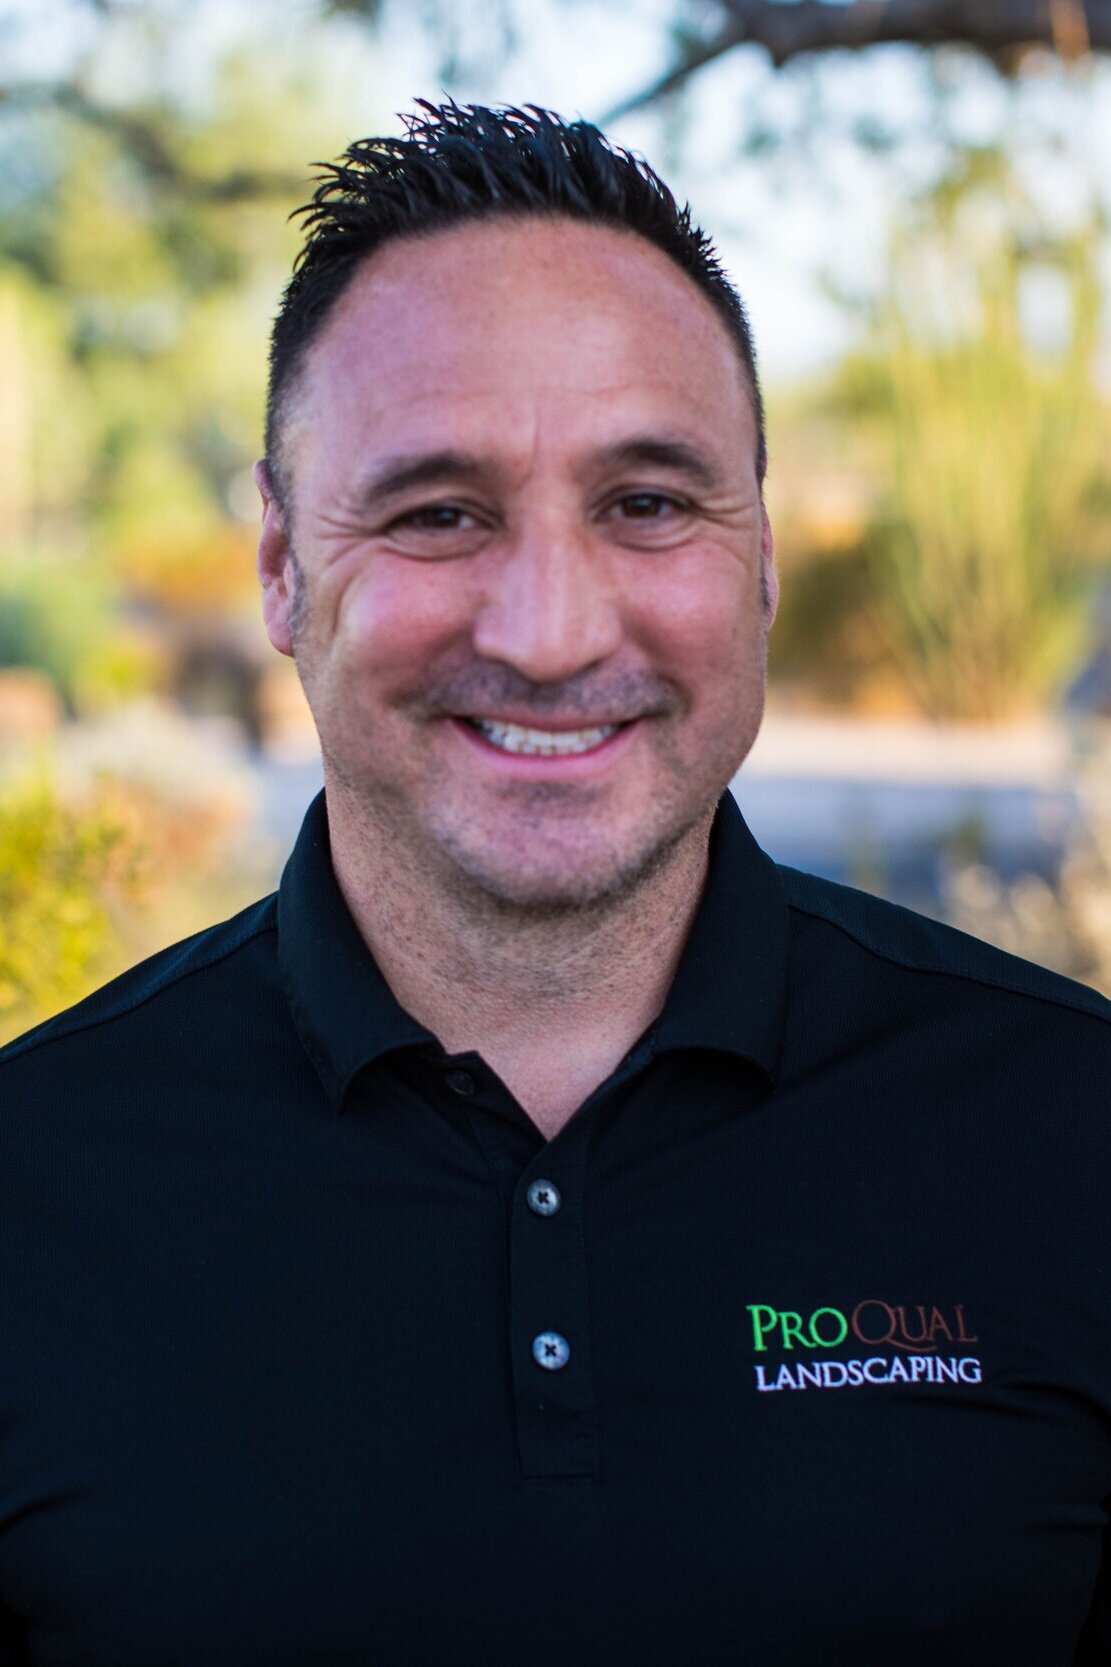 Meet The Team Proqual Landscaping